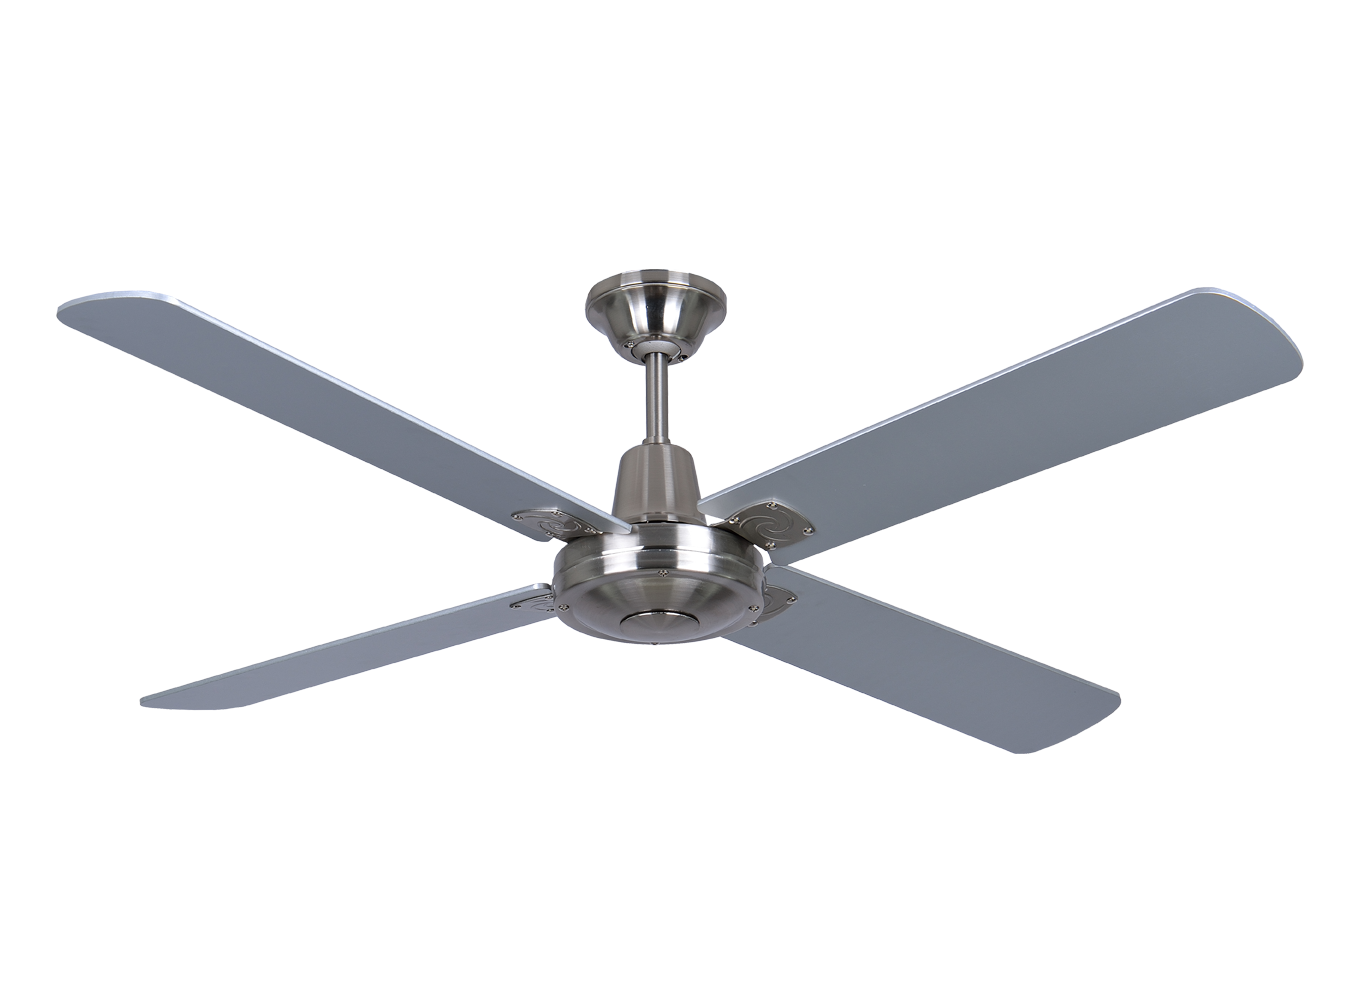 Maxair iconic fan maxairchromesilverplylge mozeypictures Choice Image